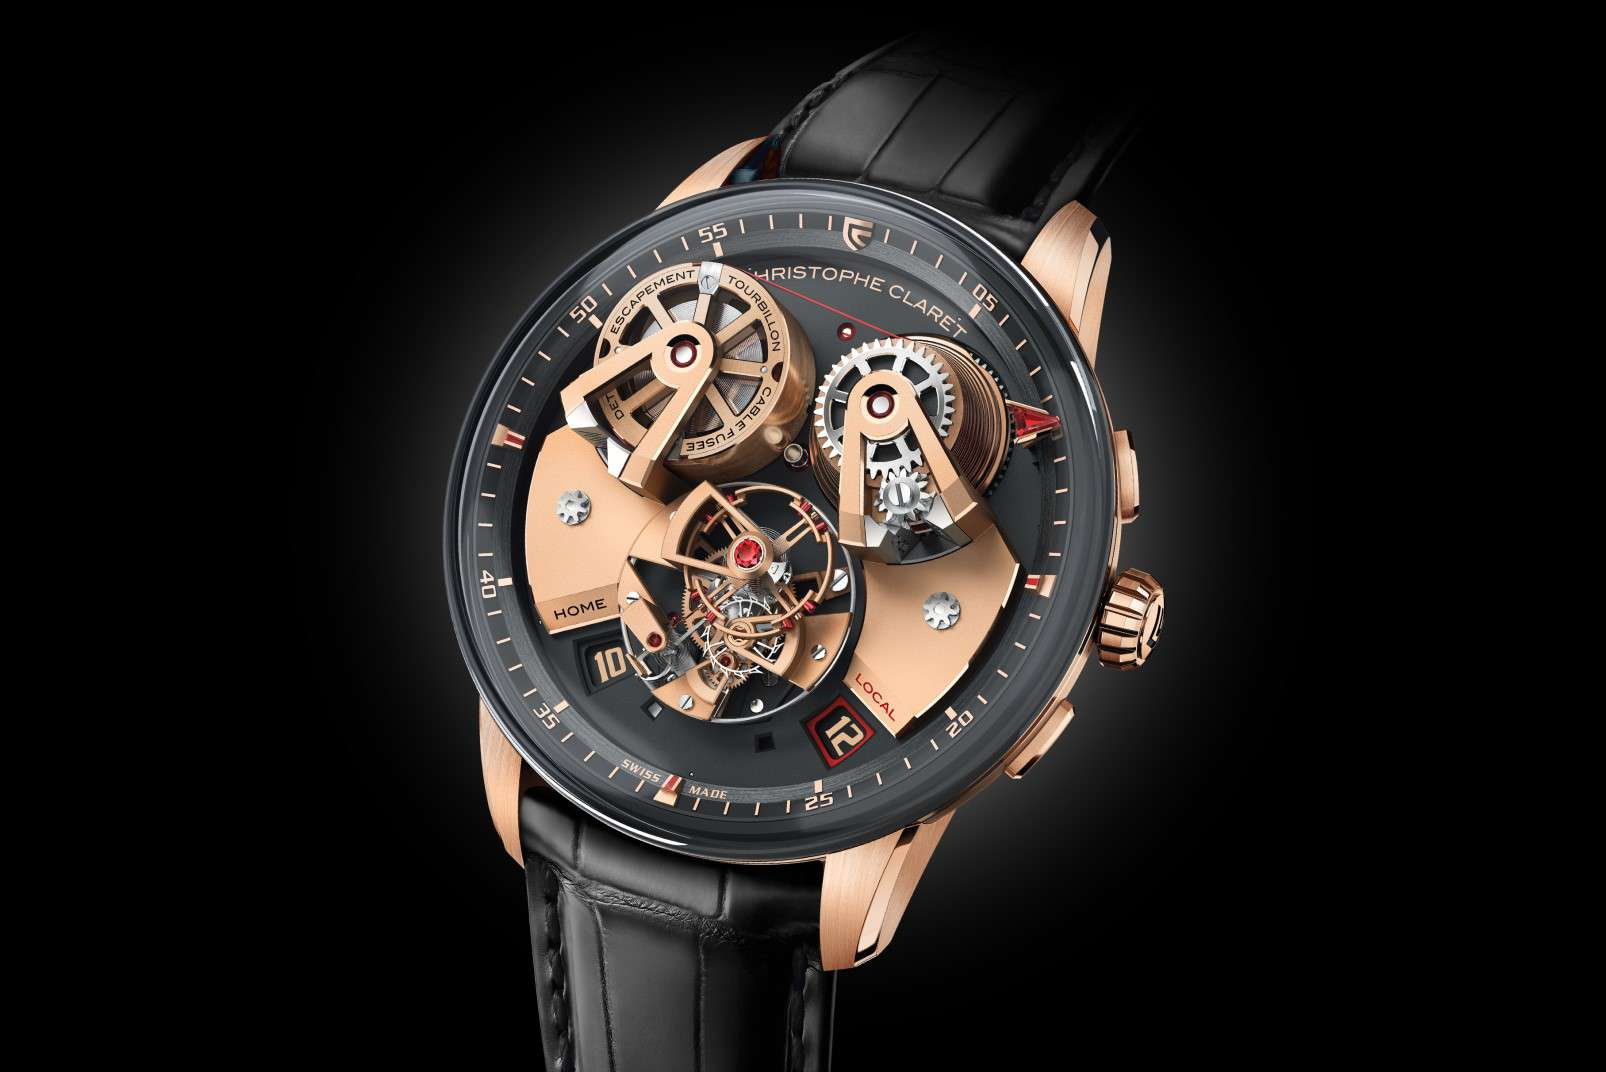 Christophe Claret Angelico - SIHH 2019